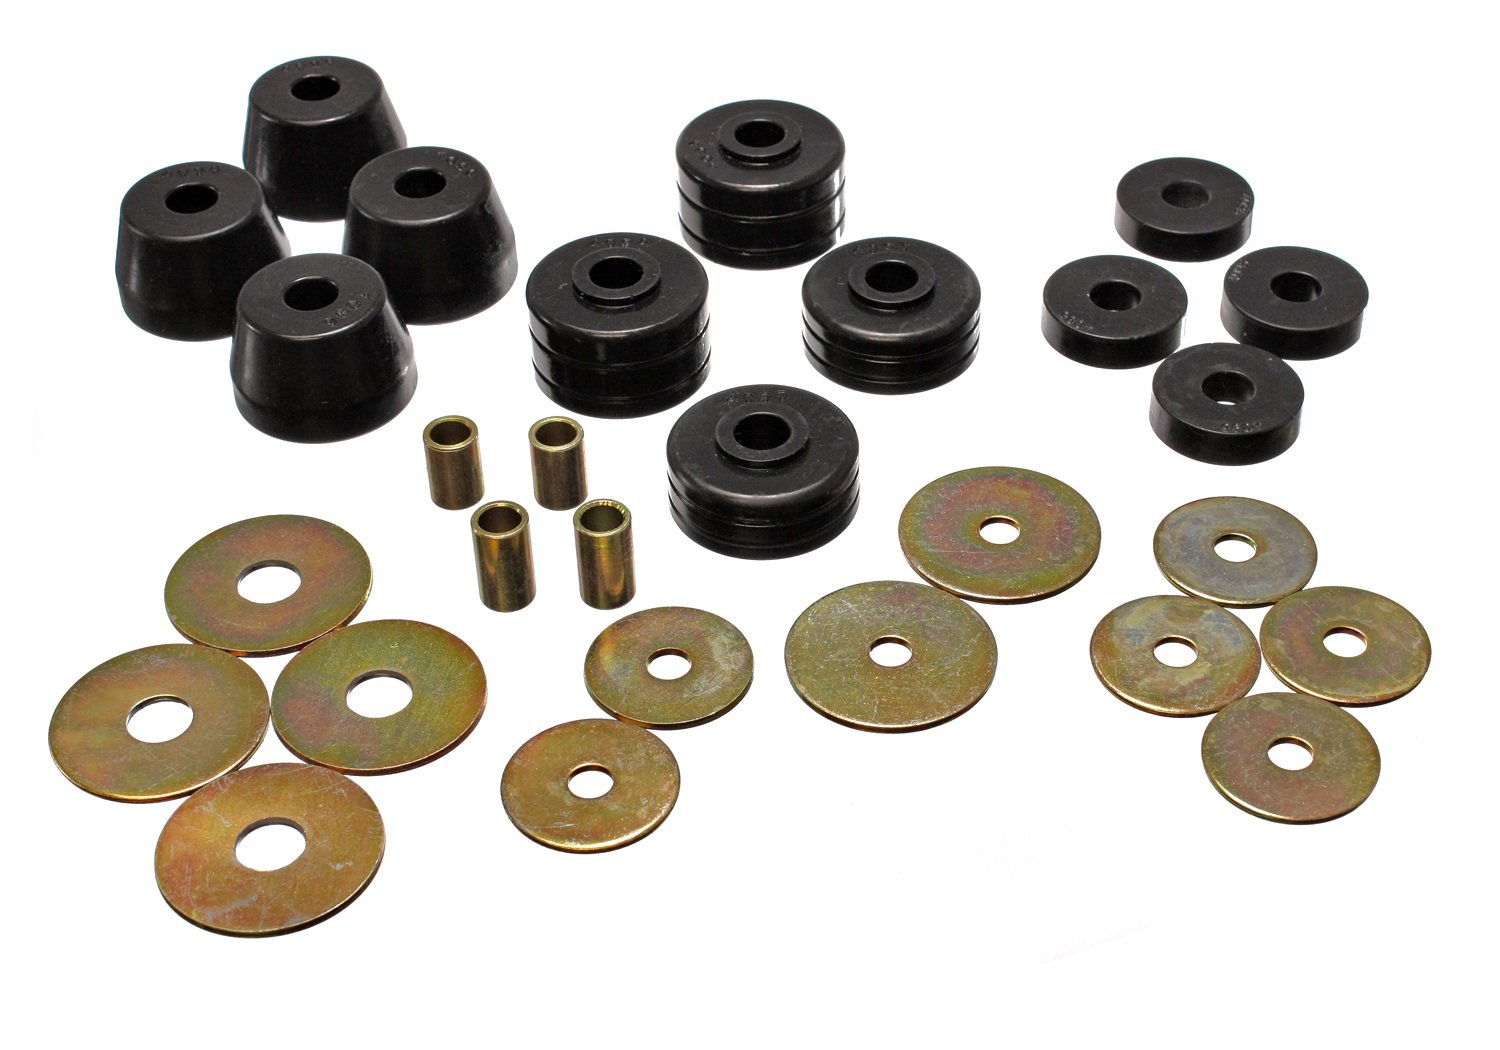 Energy Suspension 5.4101G Body Mount for D100-300 2 and 4WD